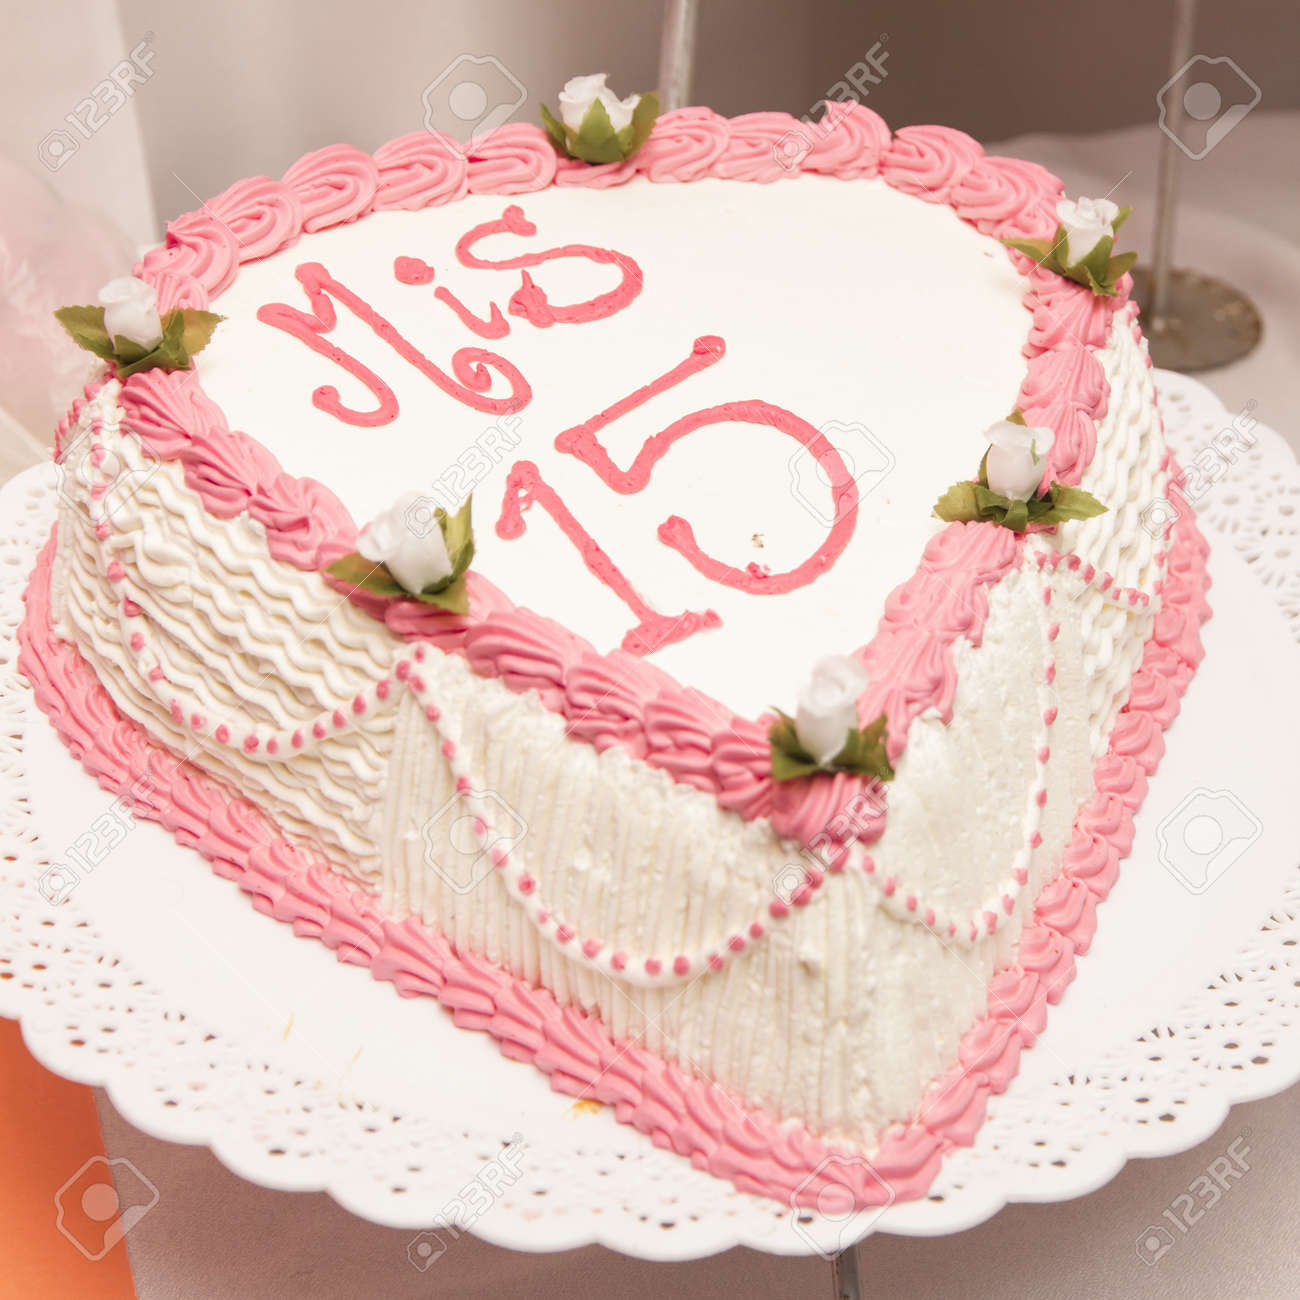 Magnificent 15Th Birthday Cake Stock Photo Picture And Royalty Free Image Funny Birthday Cards Online Alyptdamsfinfo